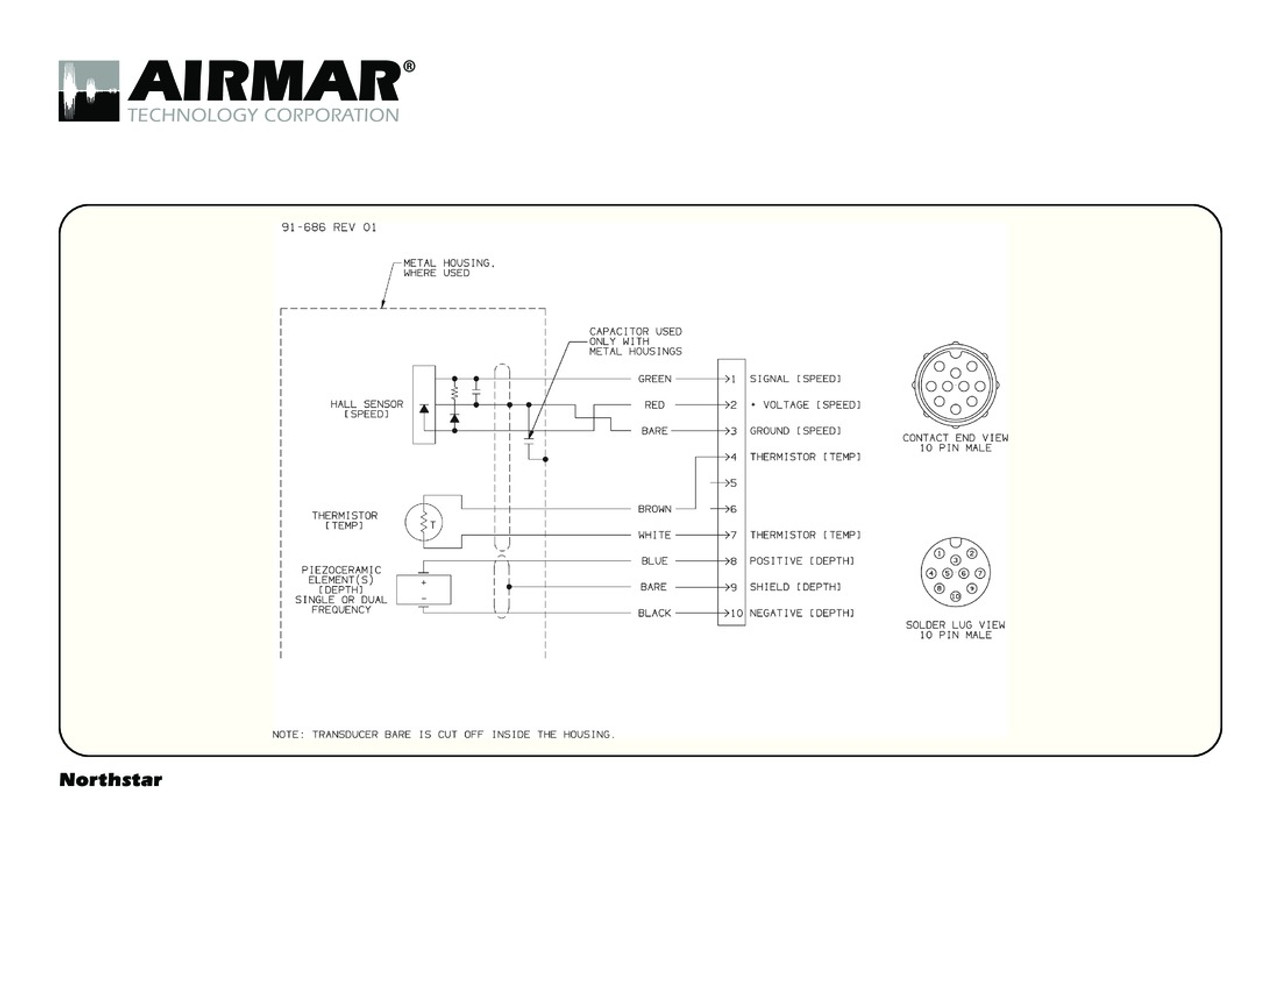 2011 Chevy Silverado Trailer Plug Wiring Diagram Gmc Male Truck On Connector Explained Rh Dmdelectro Co 2003